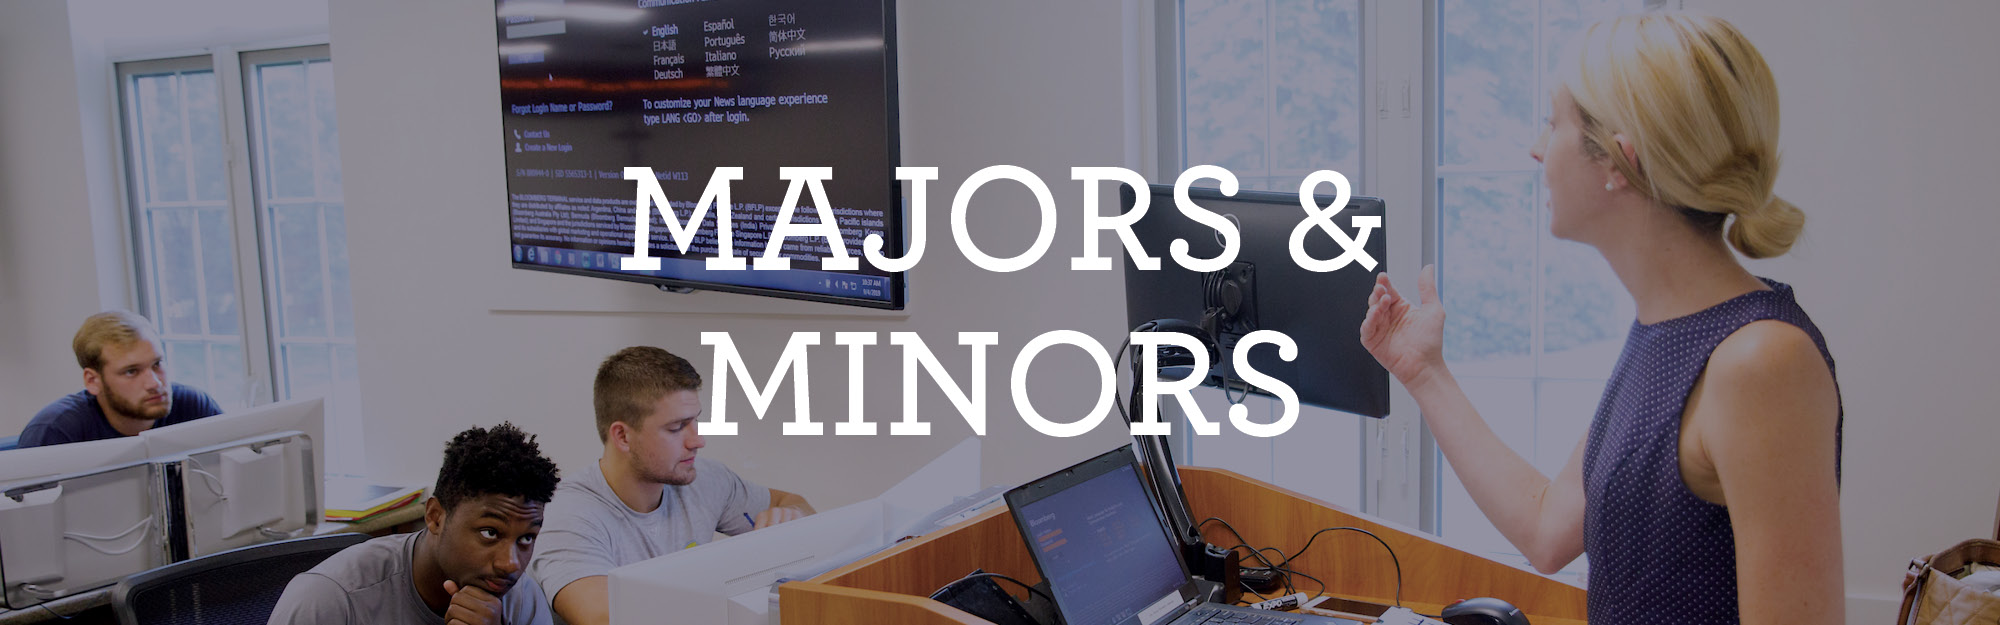 Majors and minors information